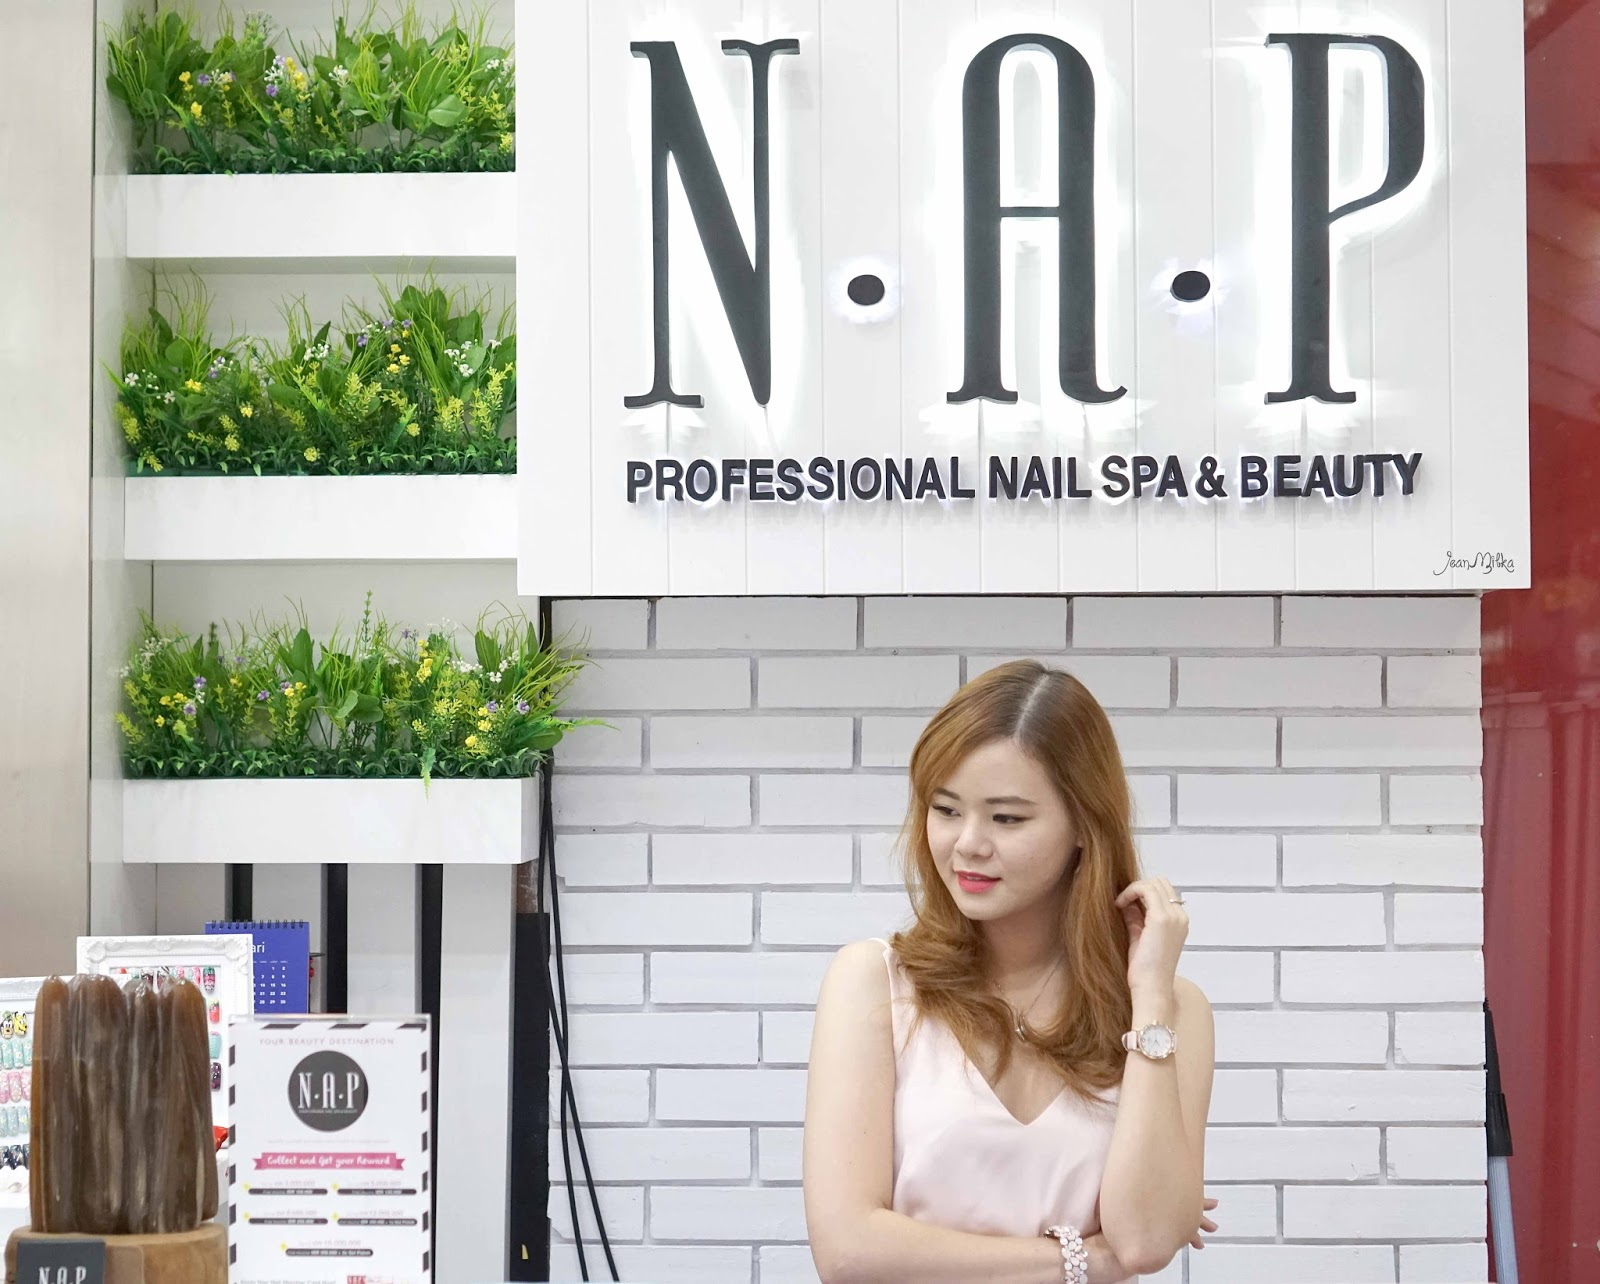 nap, nap salon, nap professional, nap nail, salon, beauty, beauty salon, salan jakarta, nap nail kemang village, salon kemang village